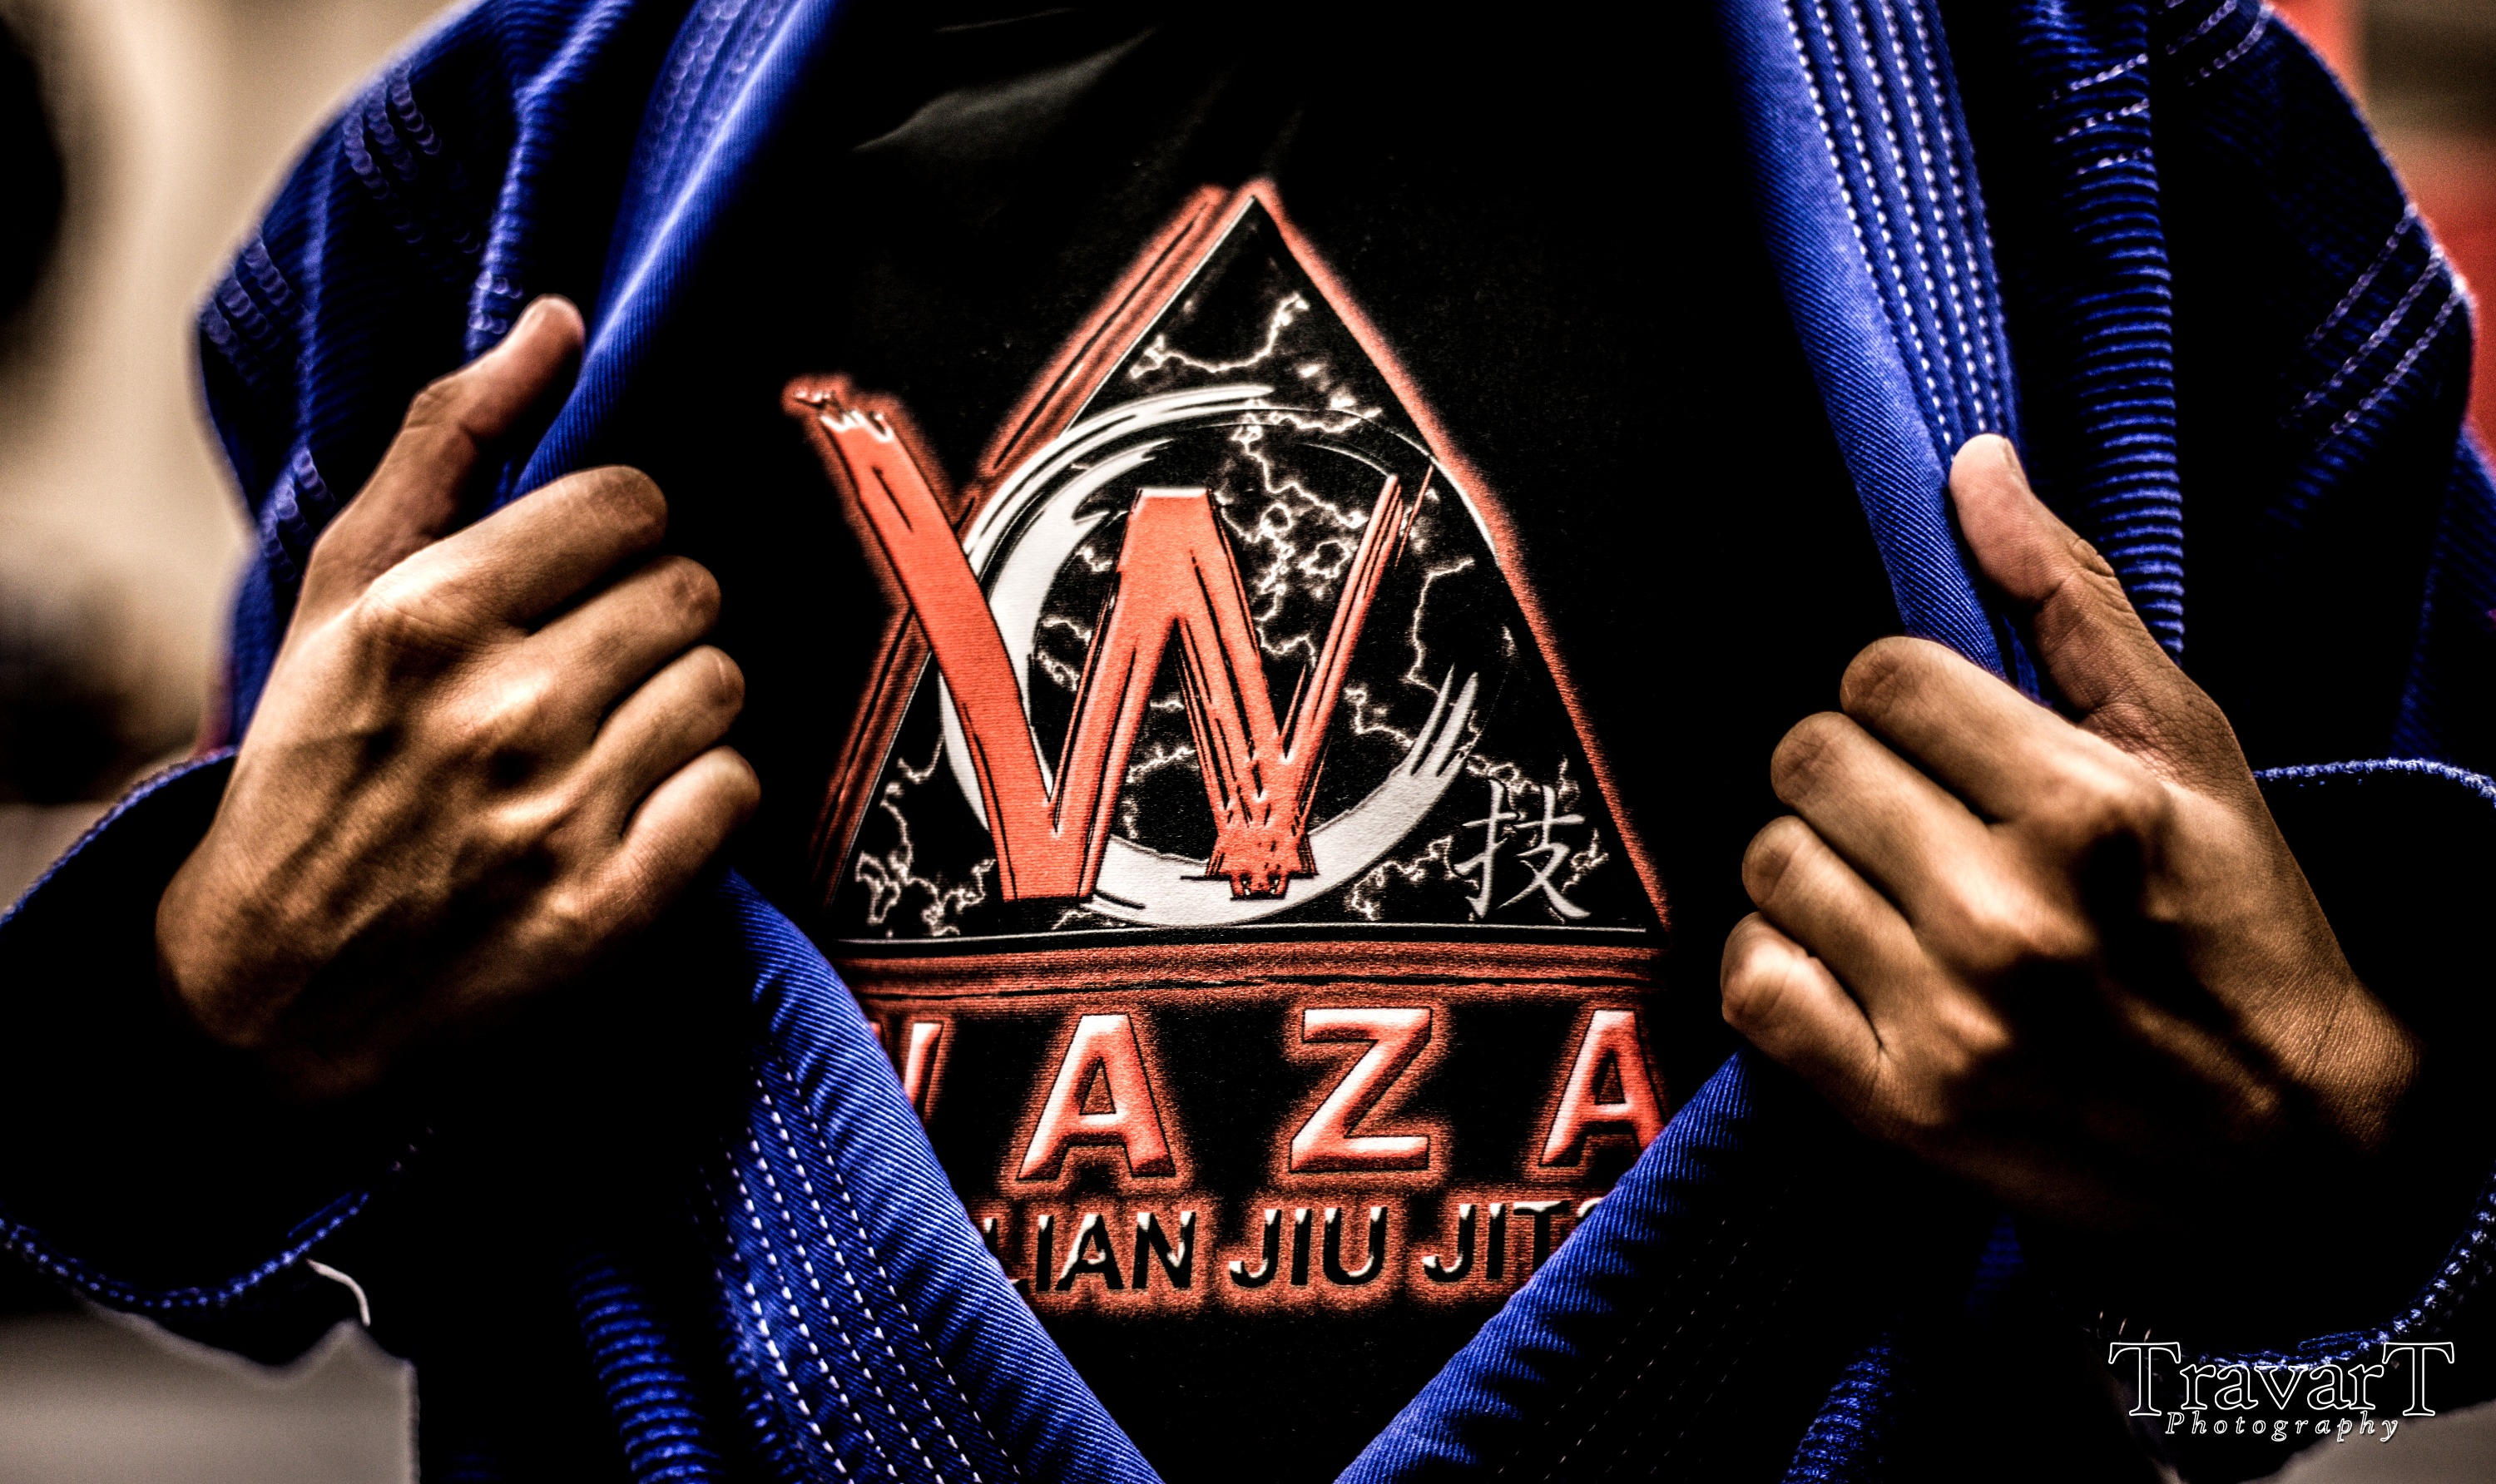 We are Waza